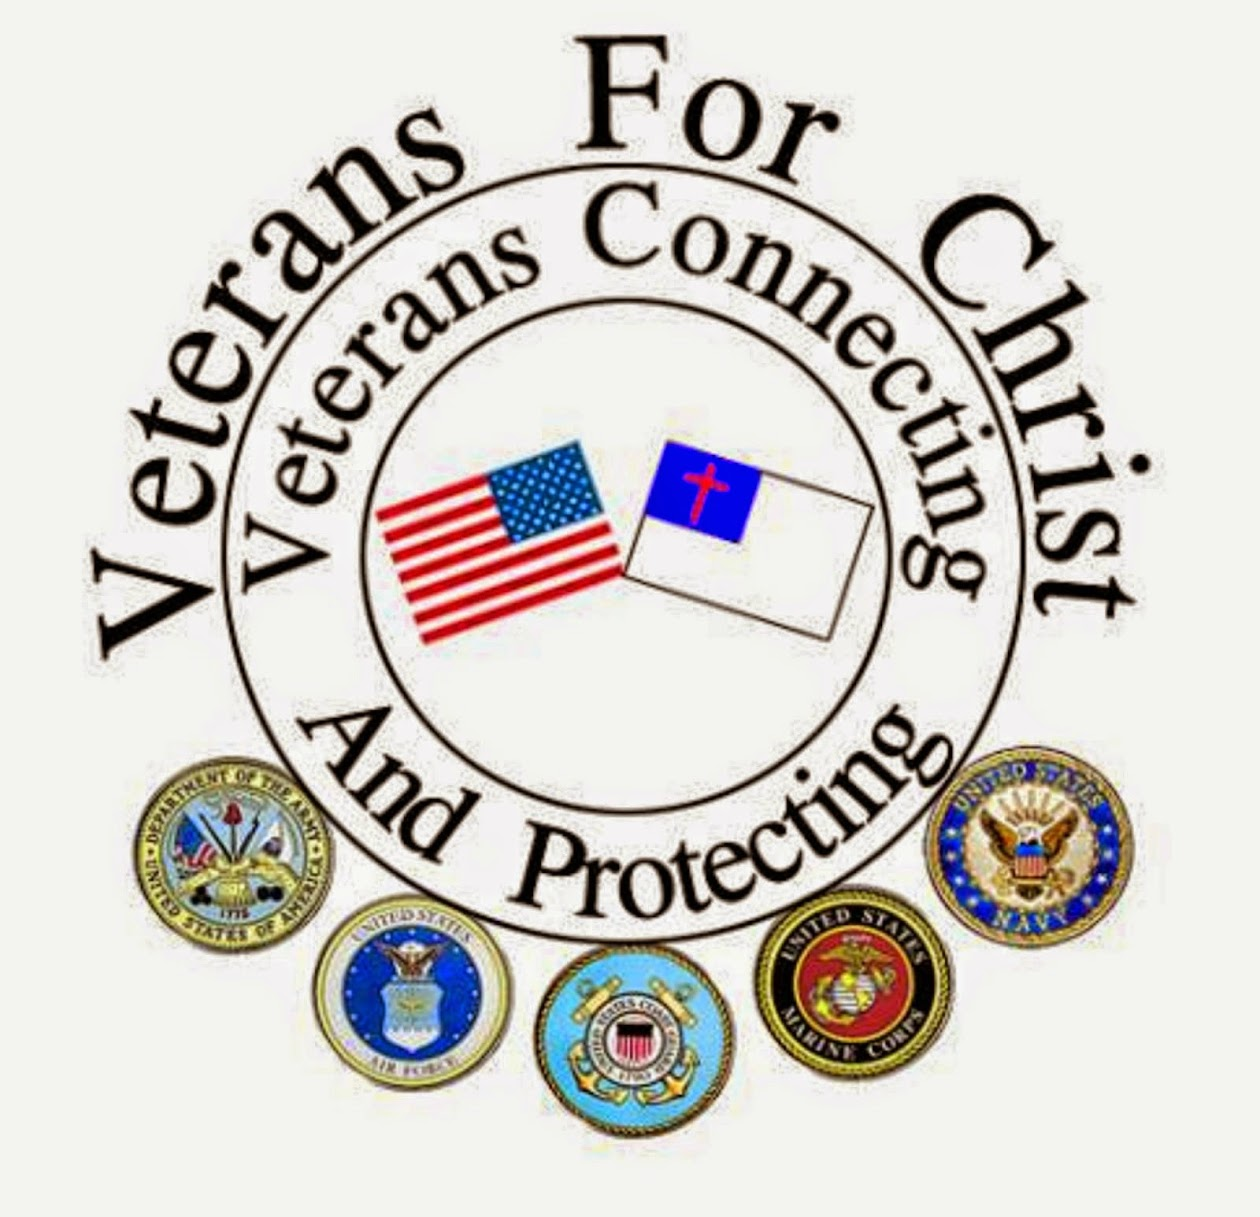 VETERANS FOR CHRIST